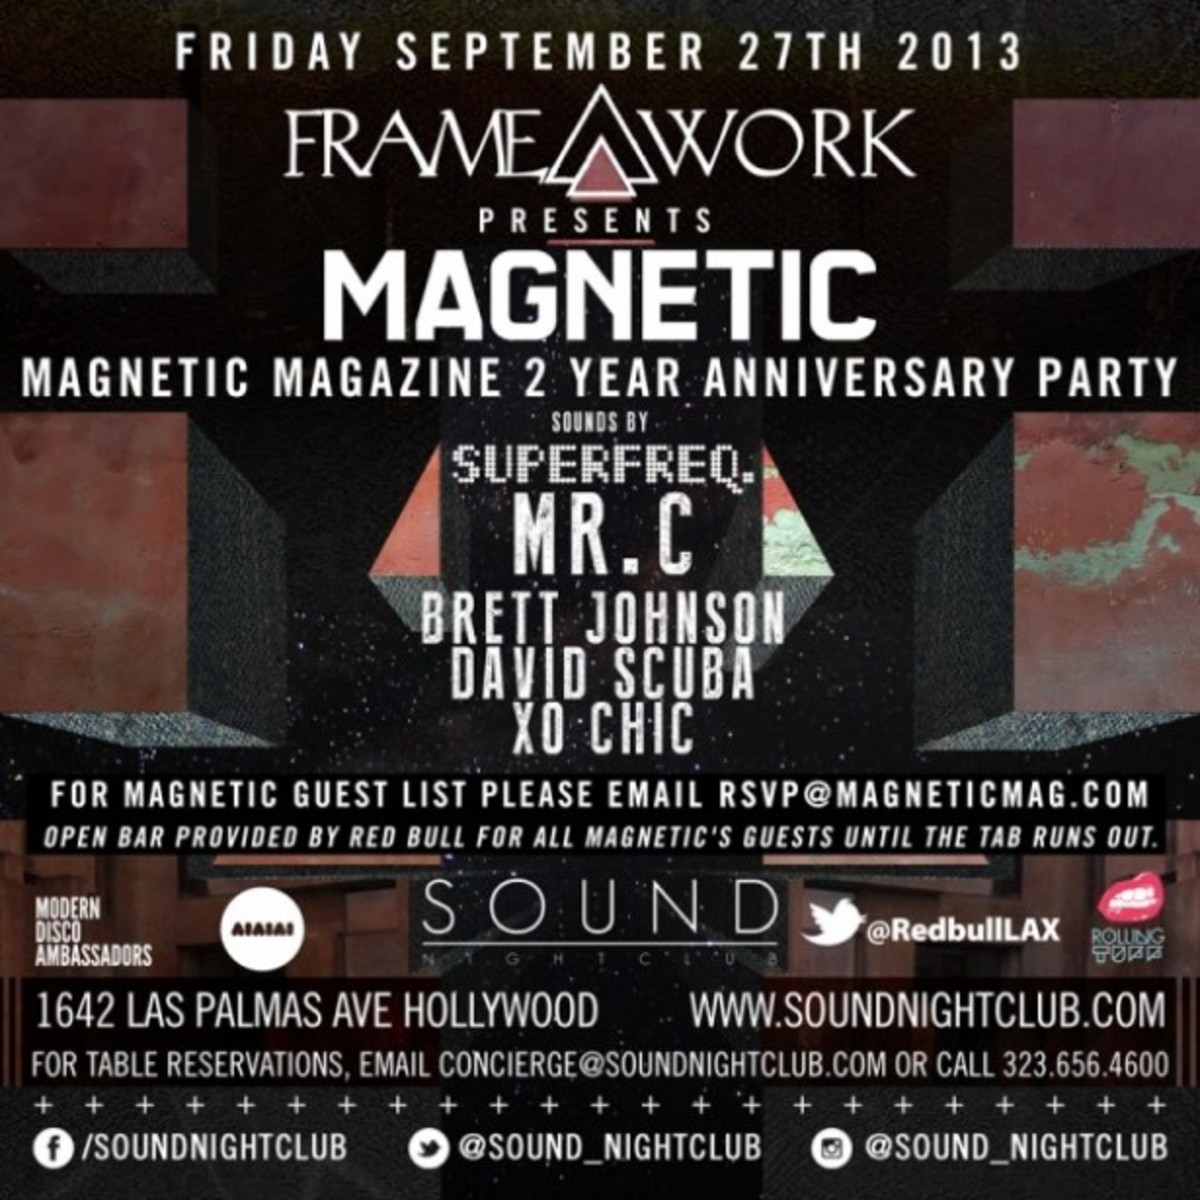 EDM News: Mr. C To Release The Future Remix Pack Featuring Omid 16b, Derek Marin And Stark; PLUS Magnetic 2 year Anniversary Party Tonight With Superfreq DJs